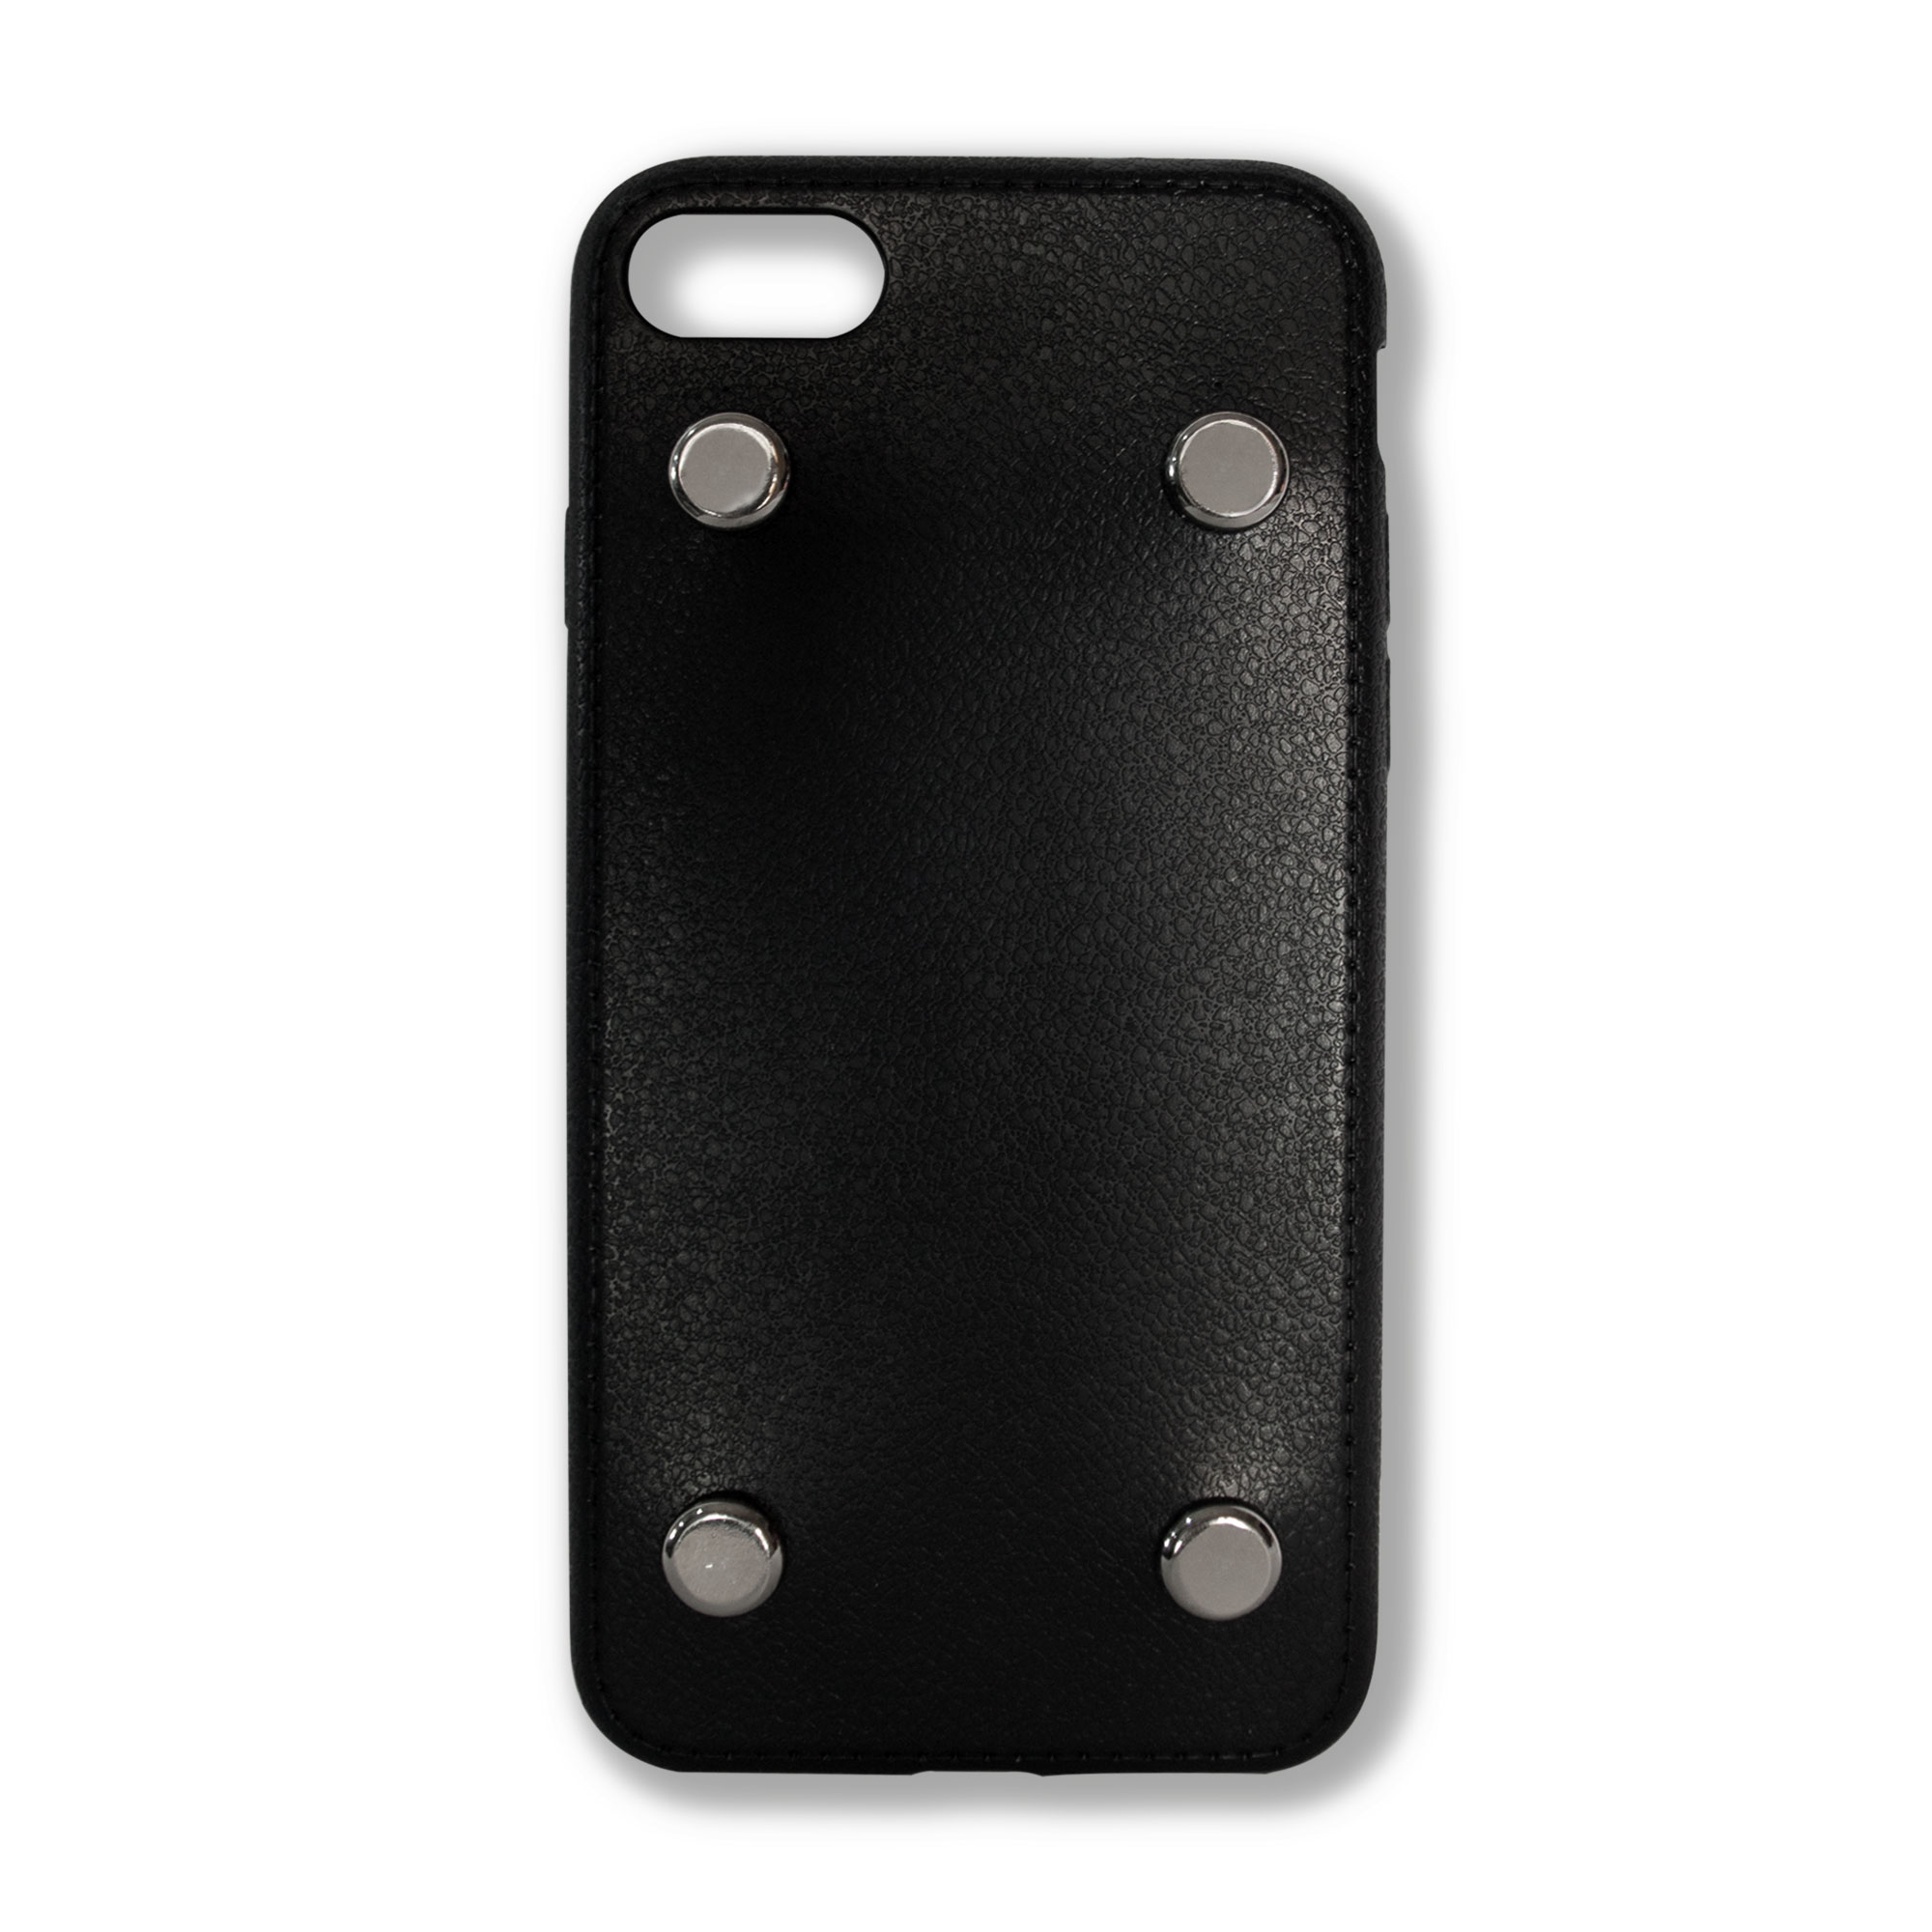 Basic Case with Silver Studs - Black Soft Case